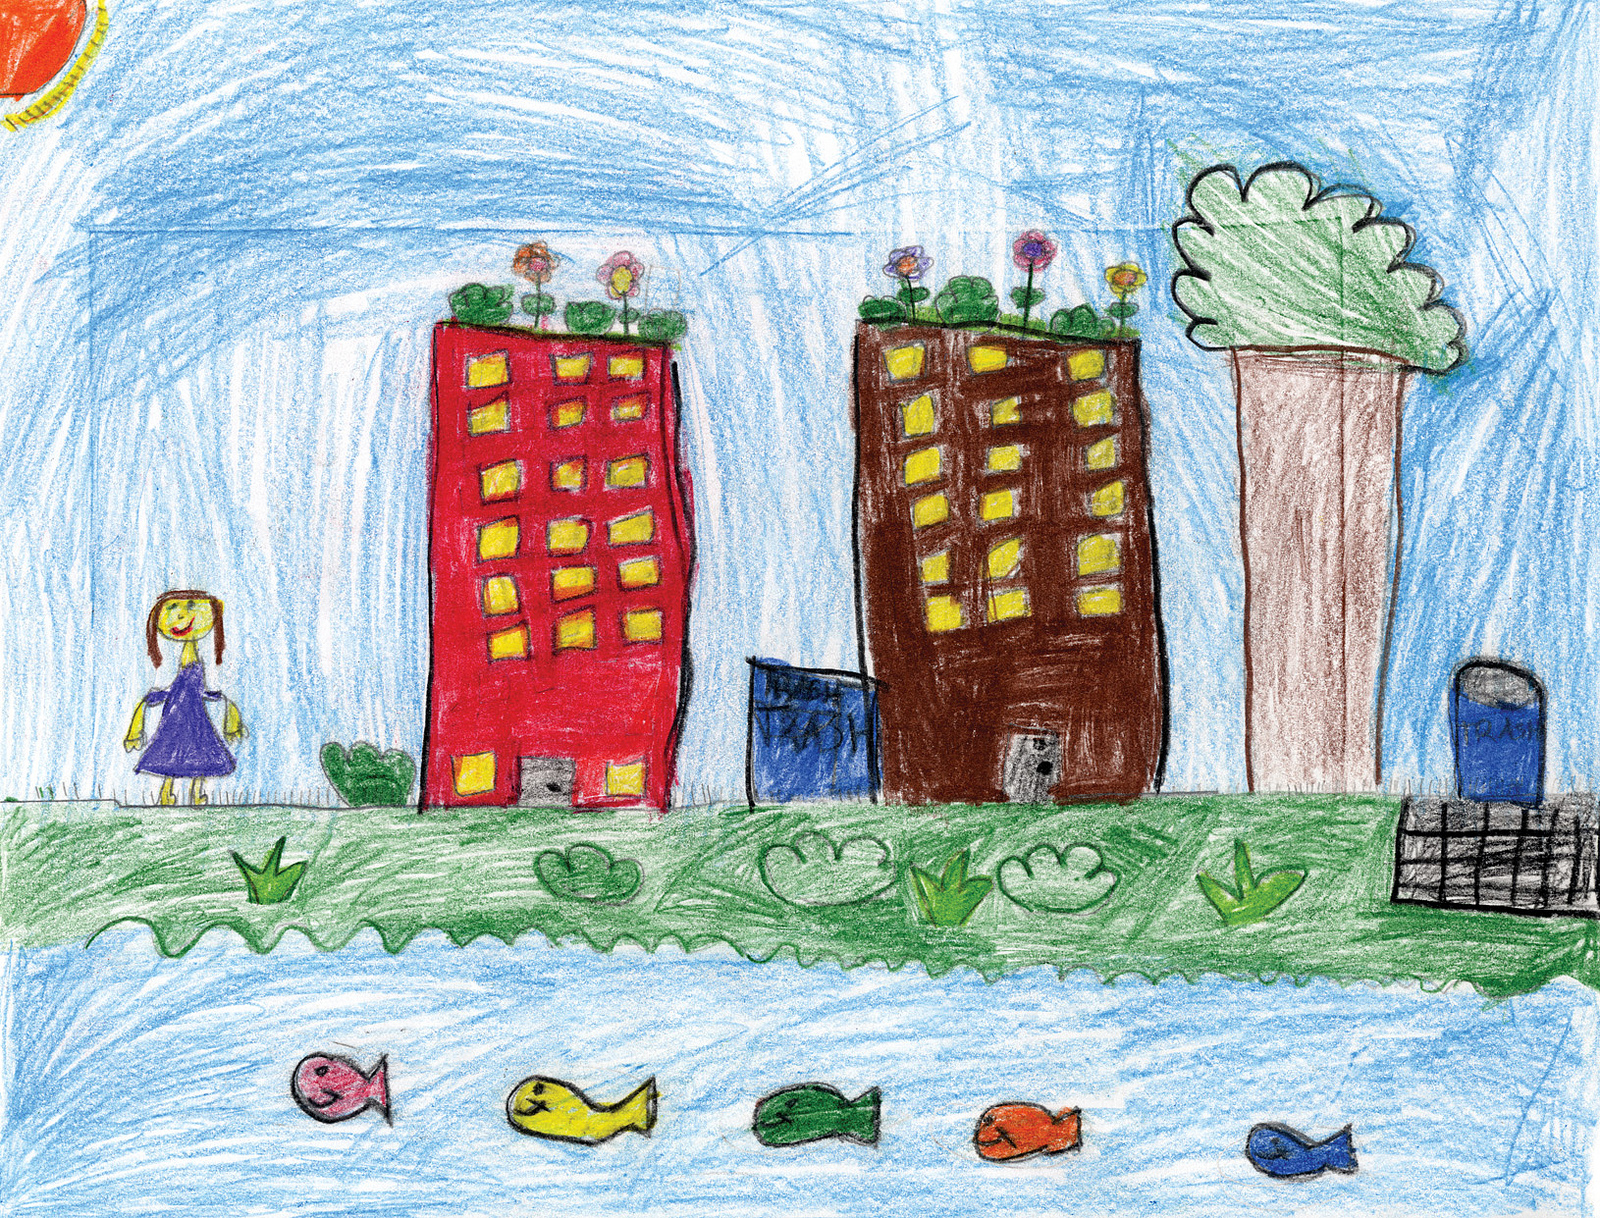 This beautiful piece of art shows how interconnected our city and rivers are. It was drawn for the Green City, Clean Waters Art Contest by Olivia Forti, and found on Flickr Commons. Thank you for the great illustration!